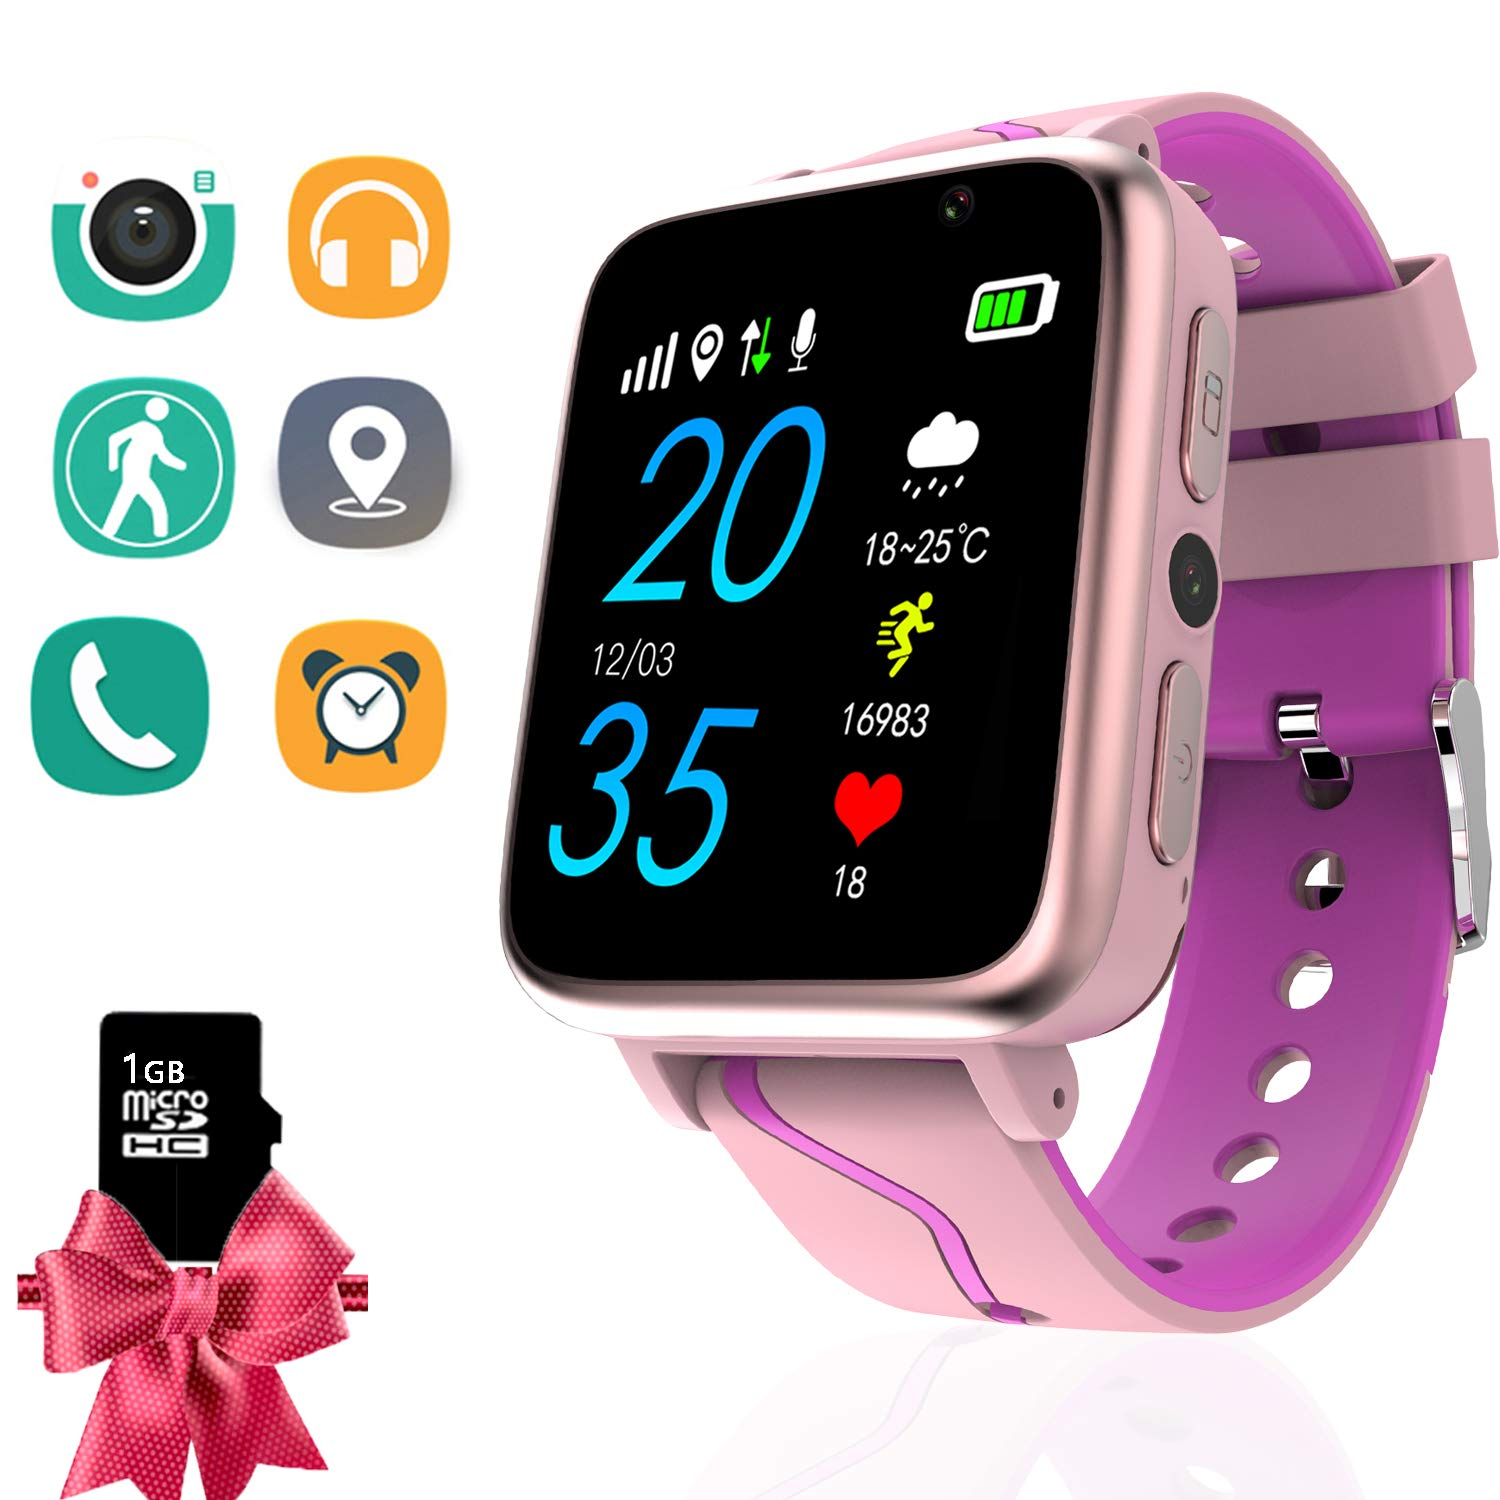 Kids Smartwatch with Music Player - Boys Girls MP3 Smart Watch Phone with LBS Tracker Voice Chat Pedometer Fitness Tracker Touch Screen Camera ...